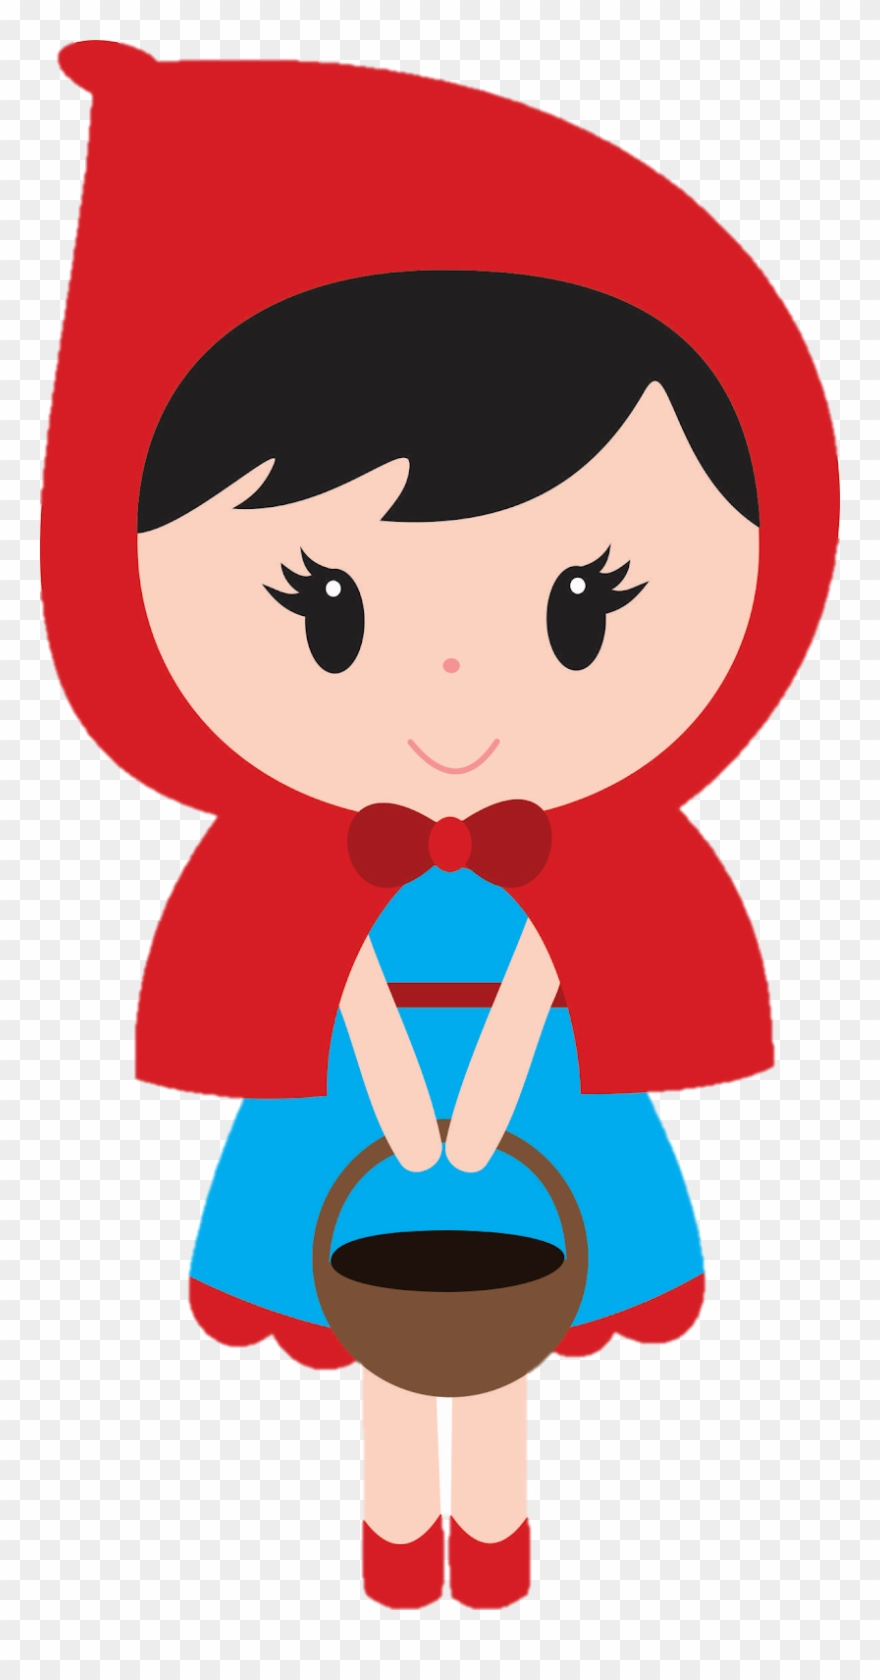 Little red riding hood clipart svg free library Little Red Riding Hood Free Clipart Clipart Creationz - Little Red ... svg free library